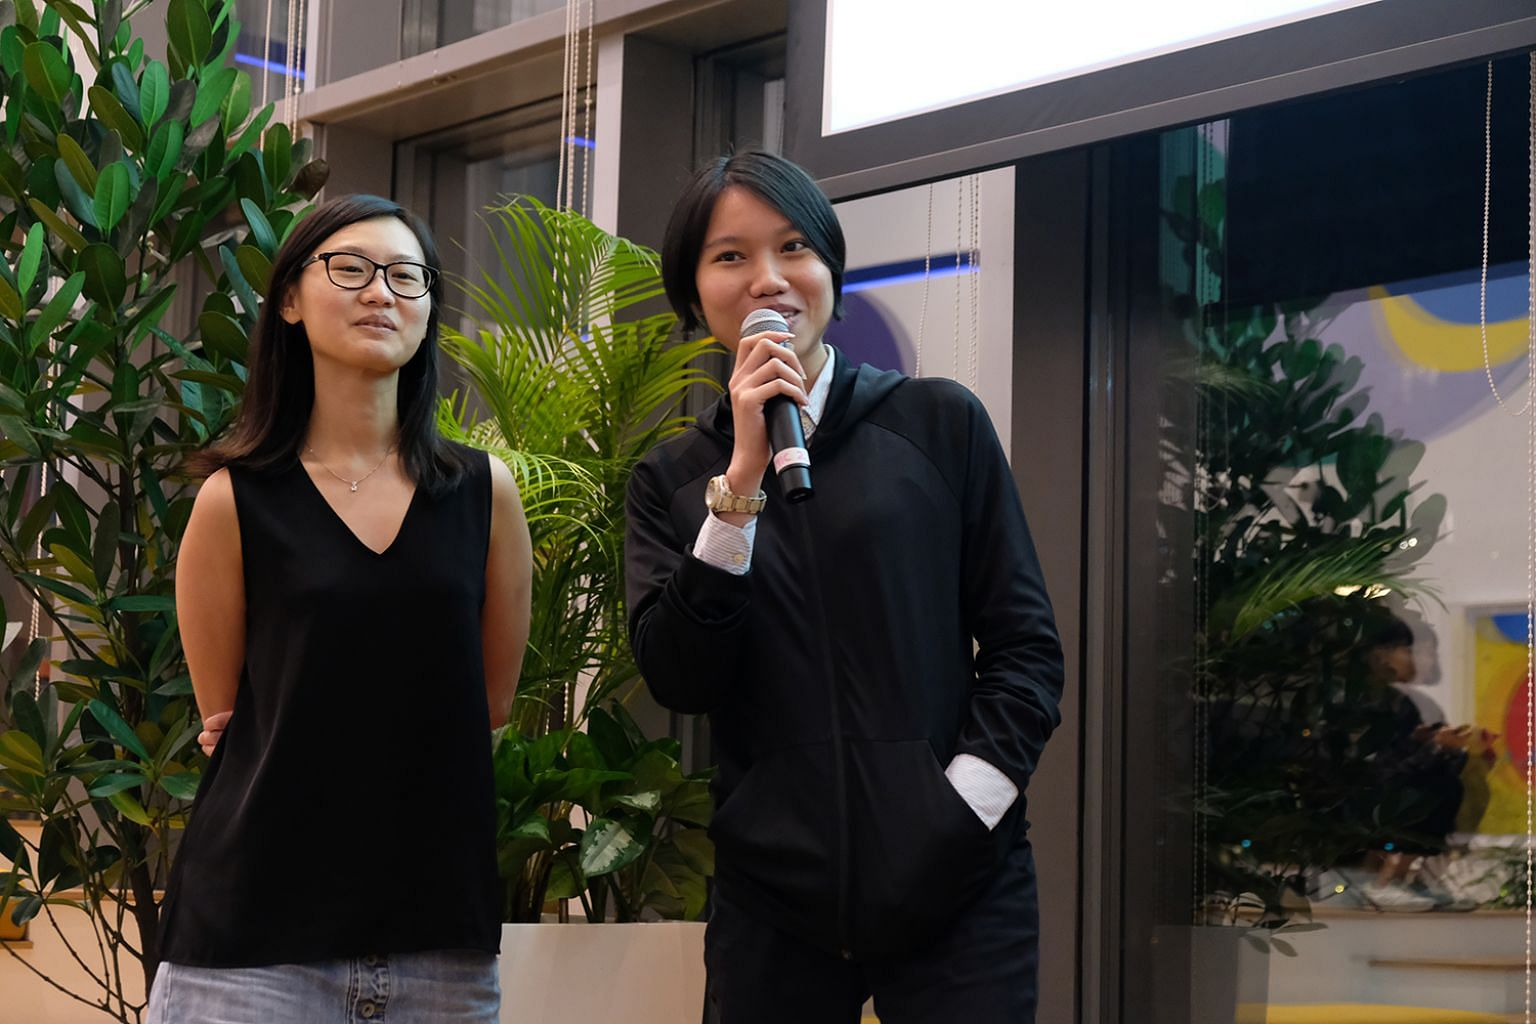 Ms Goh Pei Wing (left) and Ms Jamie Soo won the first prize in the XDS Data Storytelling competition that took place on Nov 14, 2019.